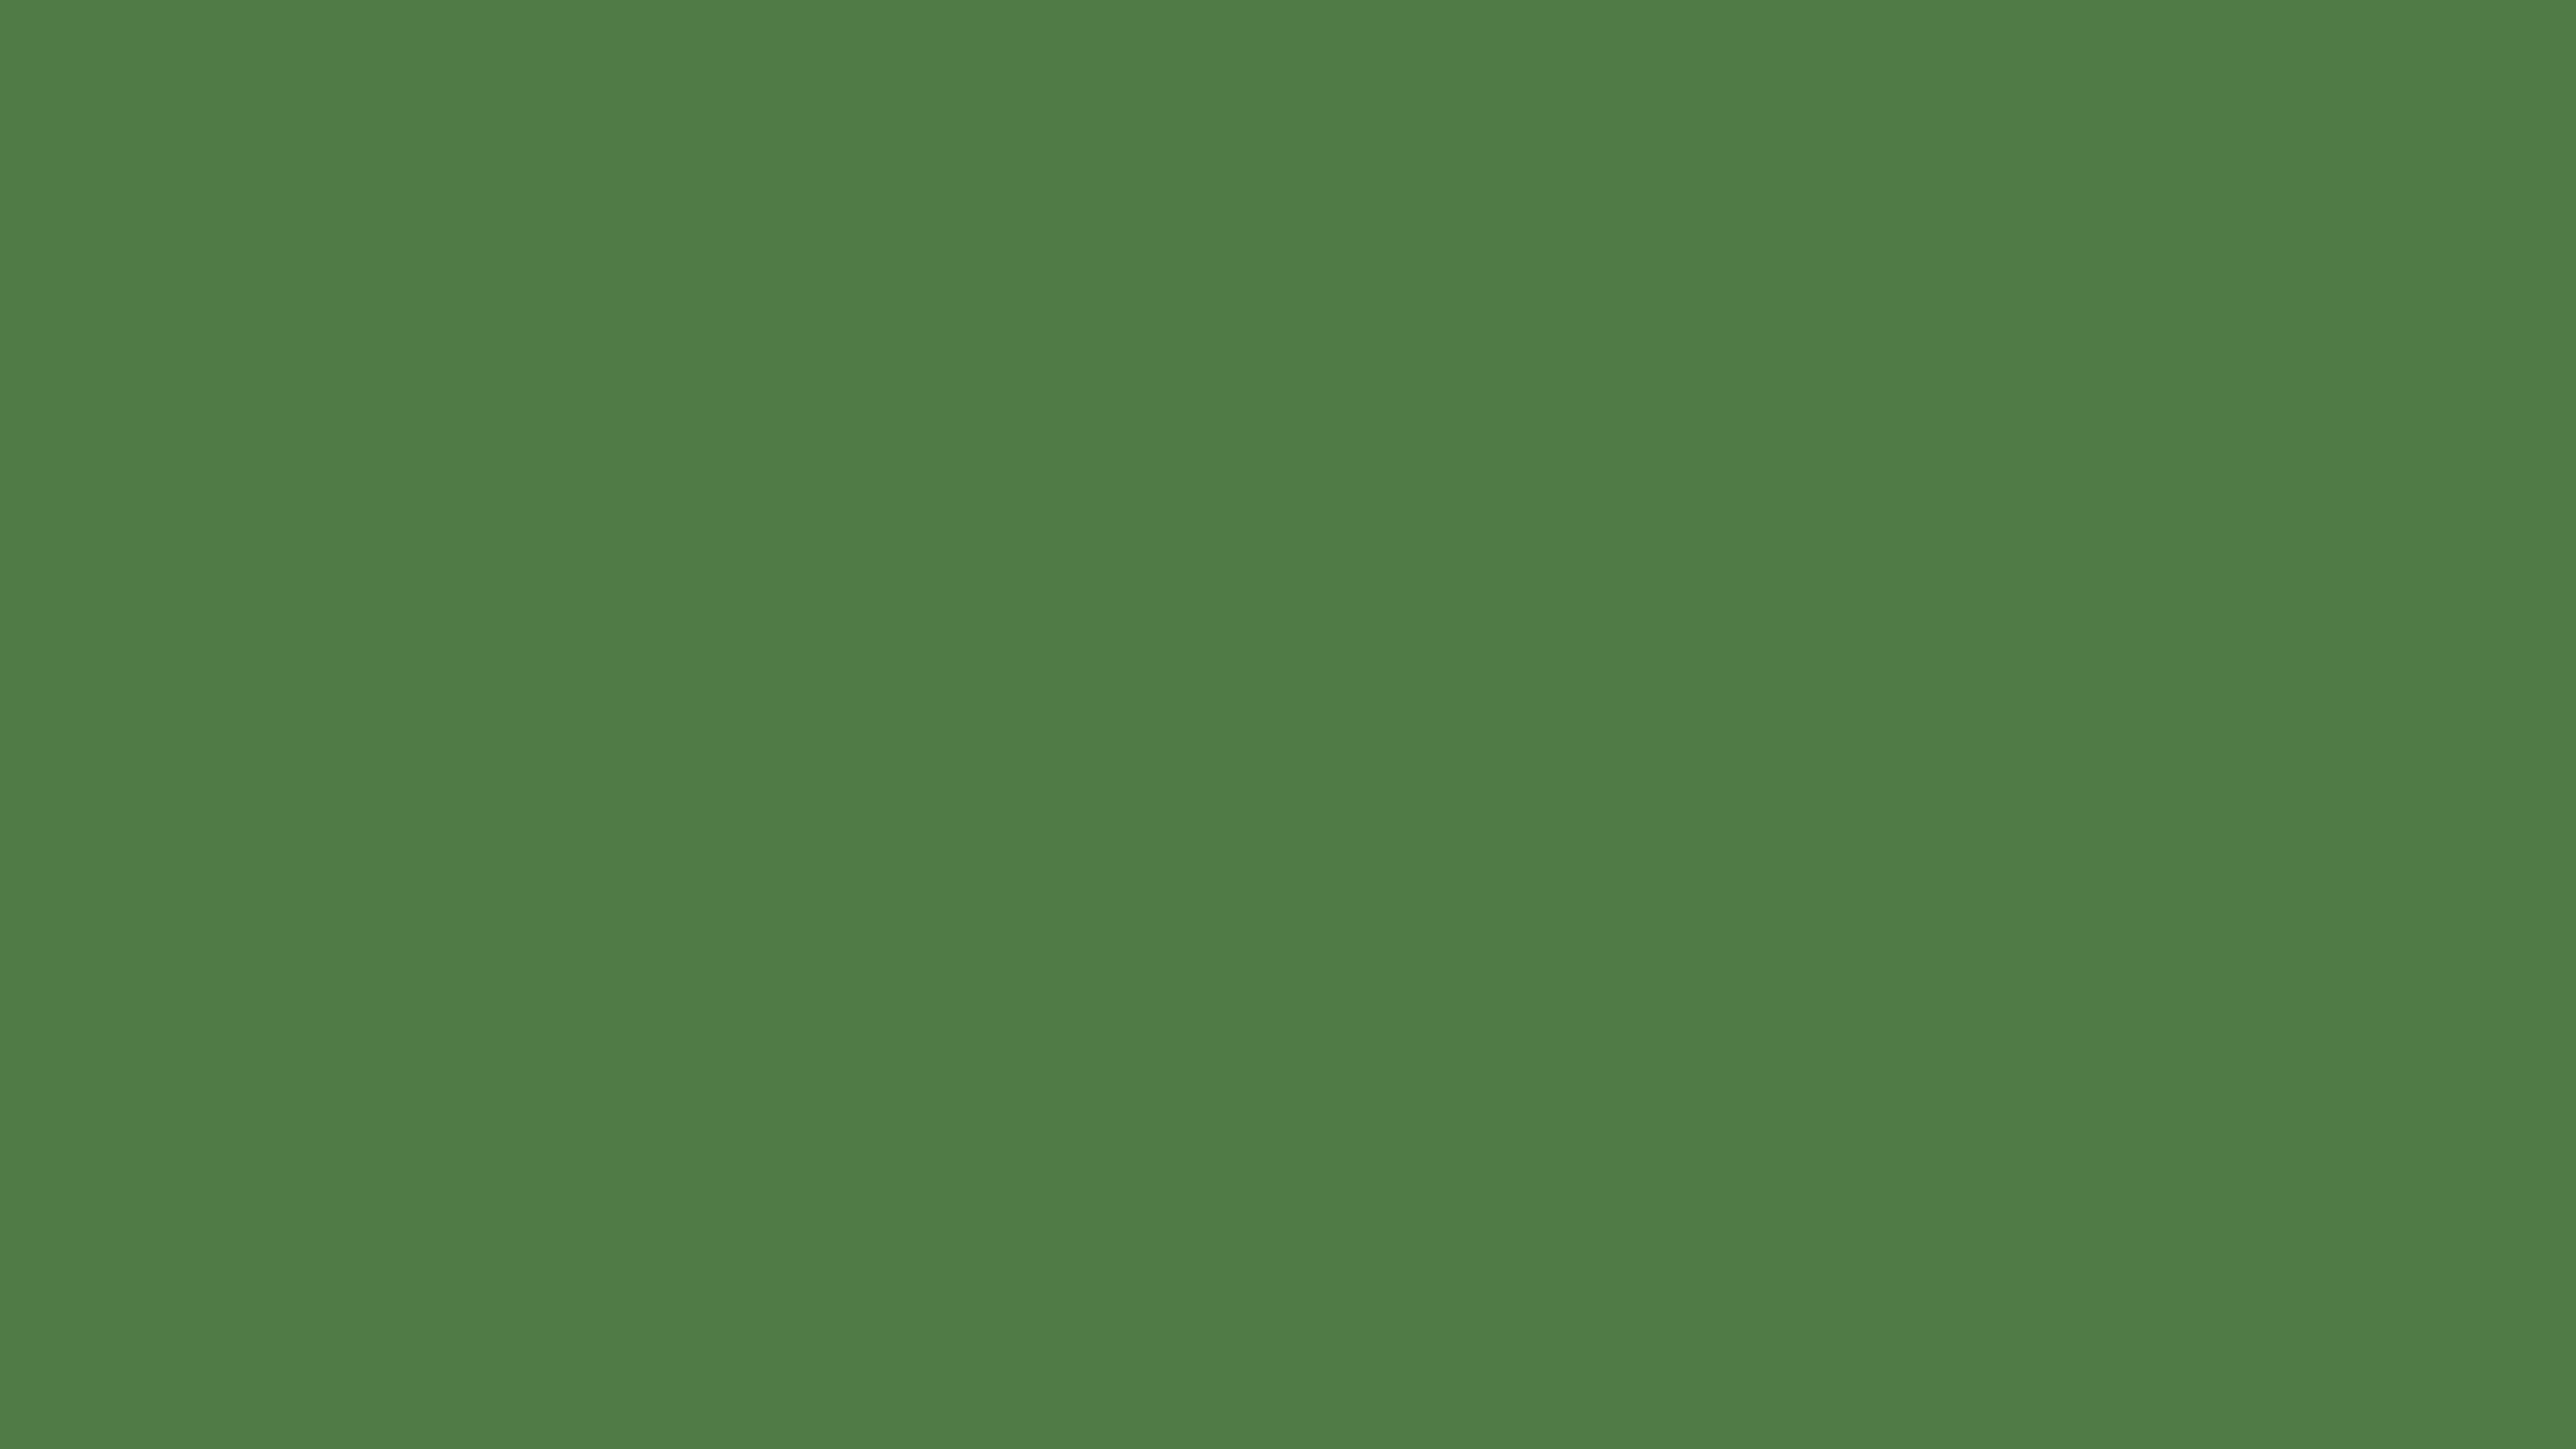 3840x2160 Fern Green Solid Color Background